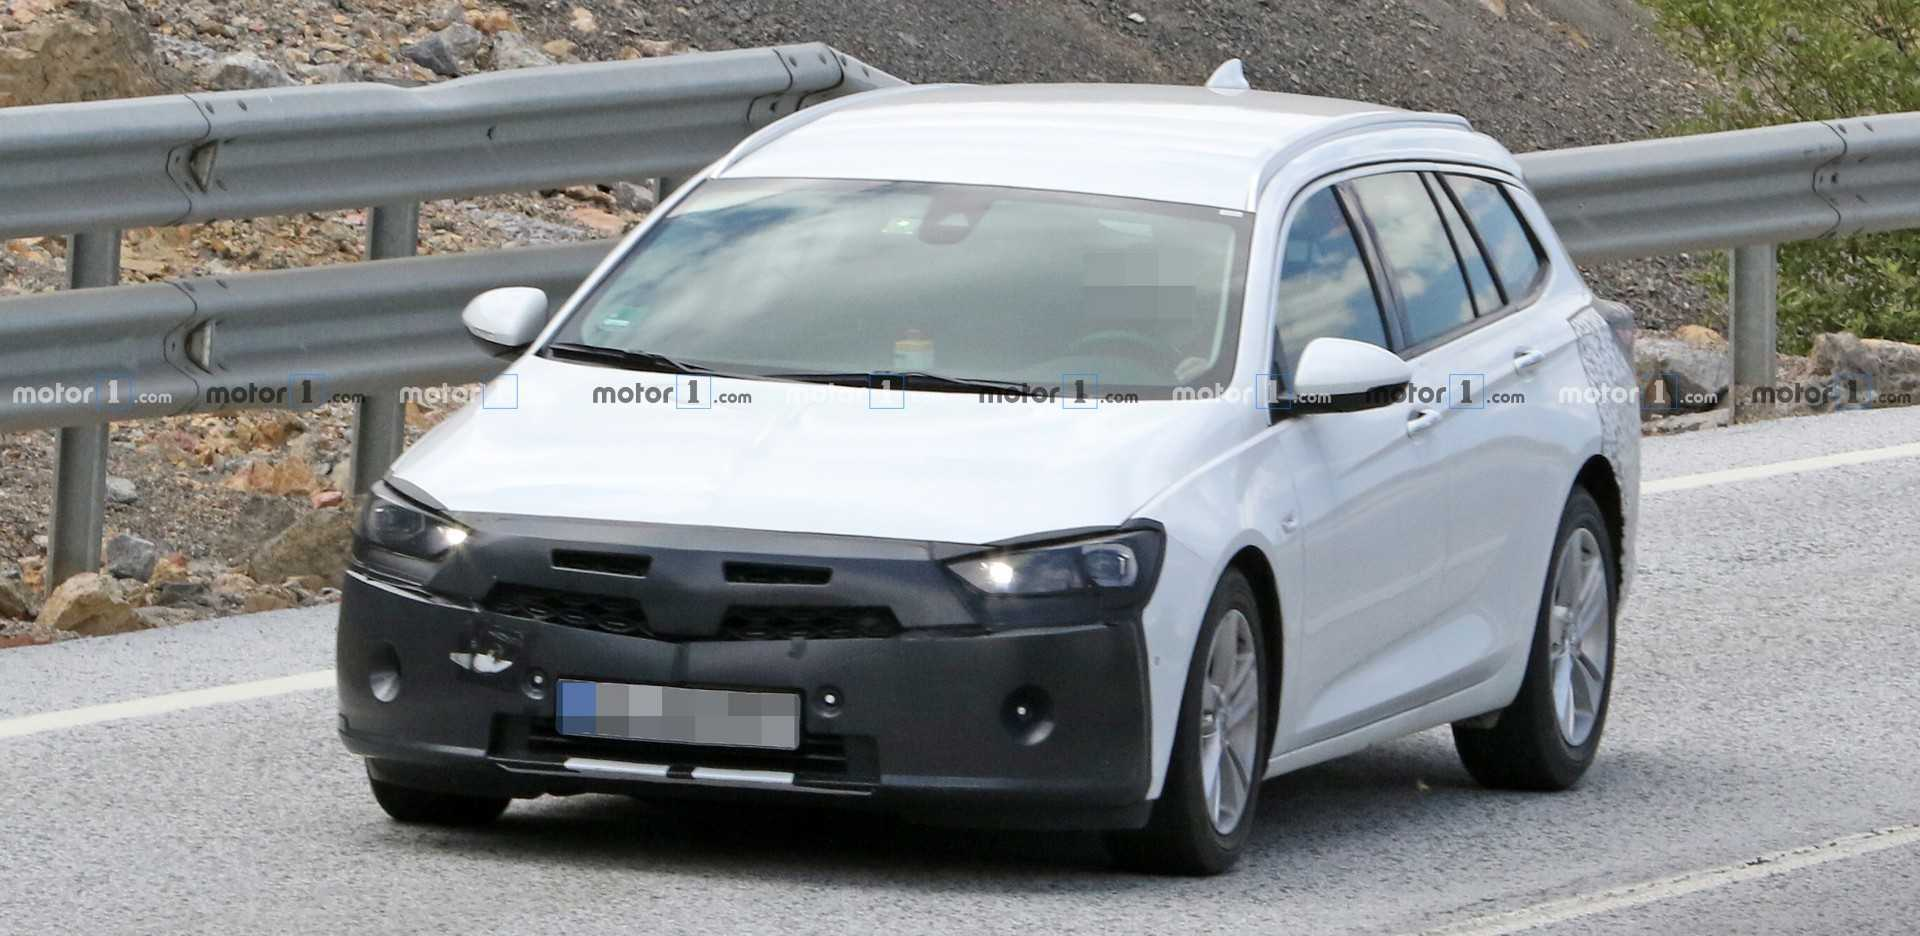 Opel Insignia Sports Tourer Spied Hiding Discreet Facelift